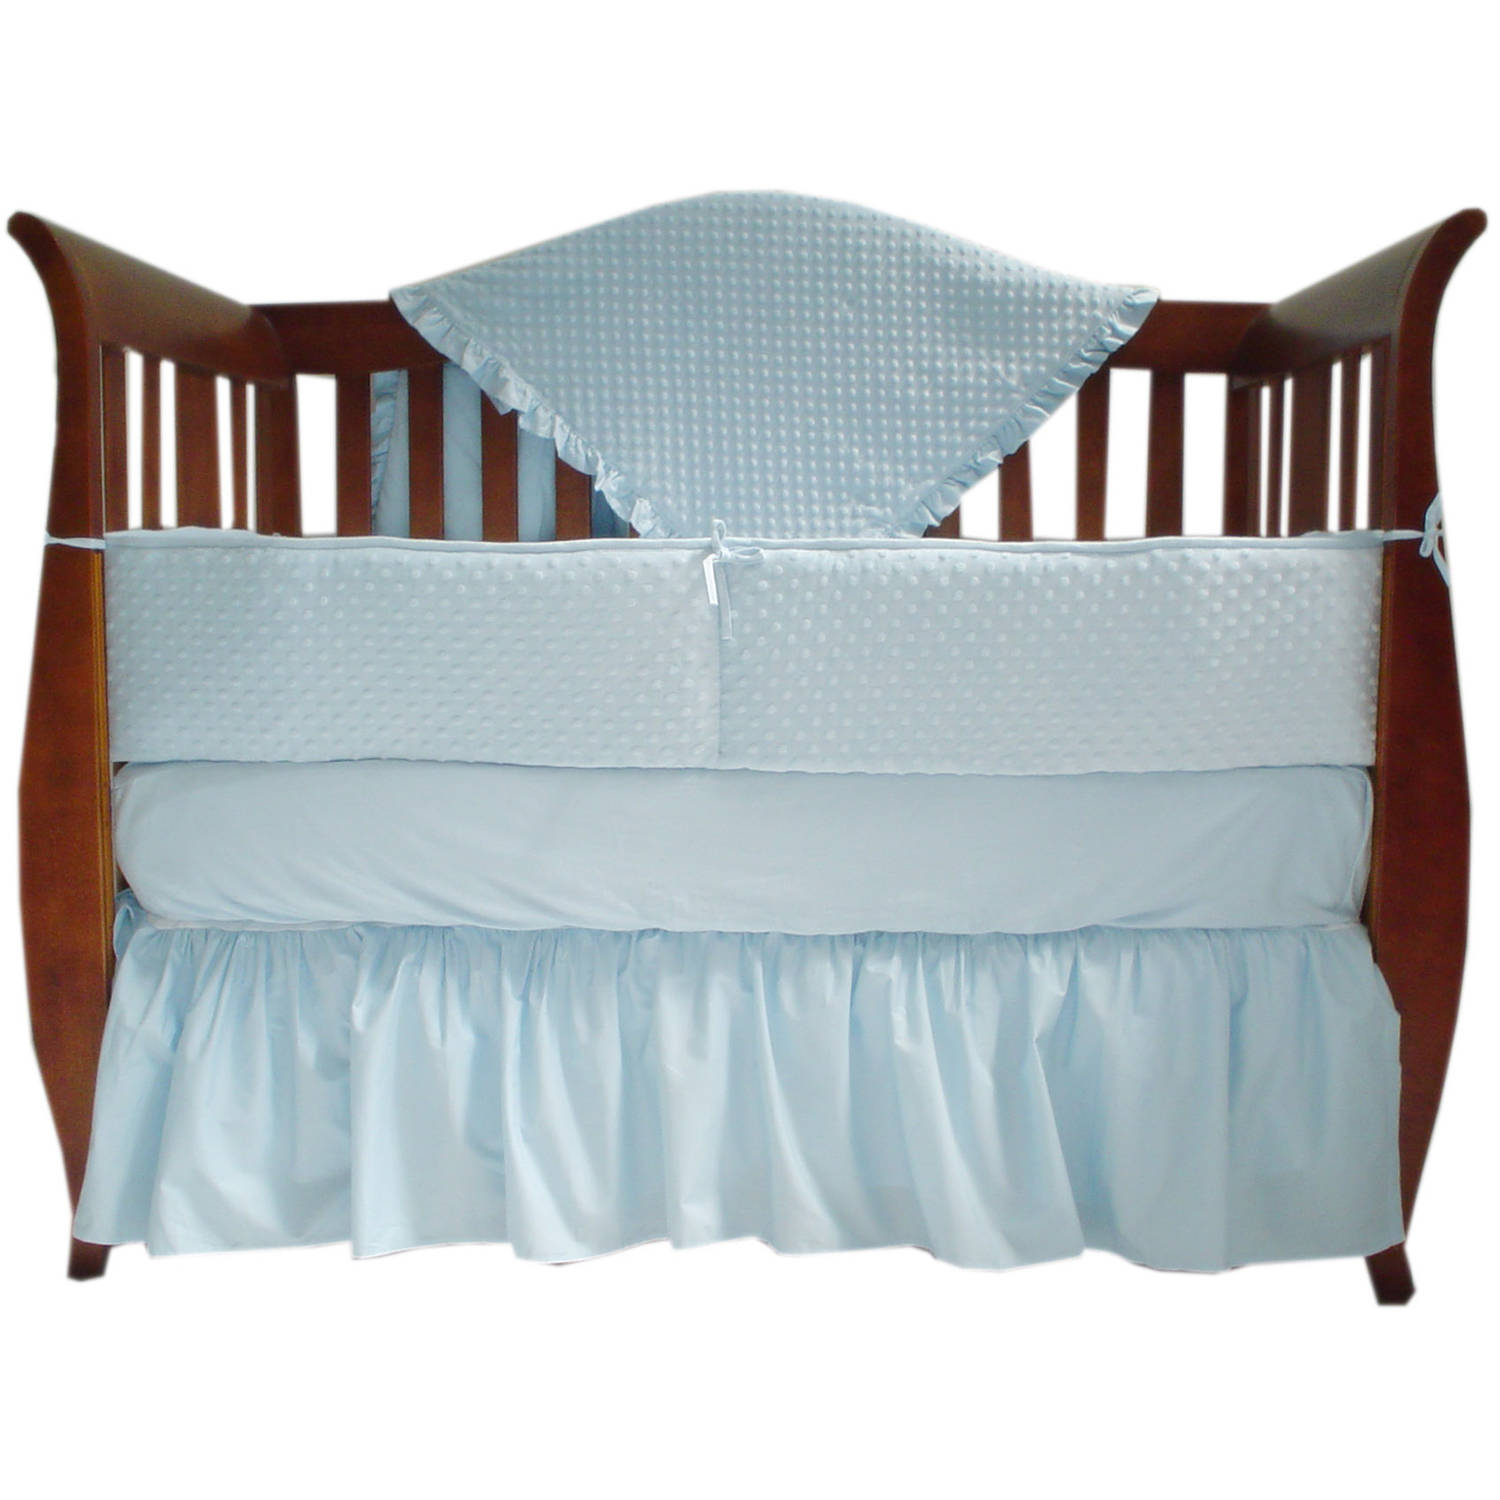 American Baby Company Heavenly Soft Minky dot 4-Piece Crib Bedding Set, Blue